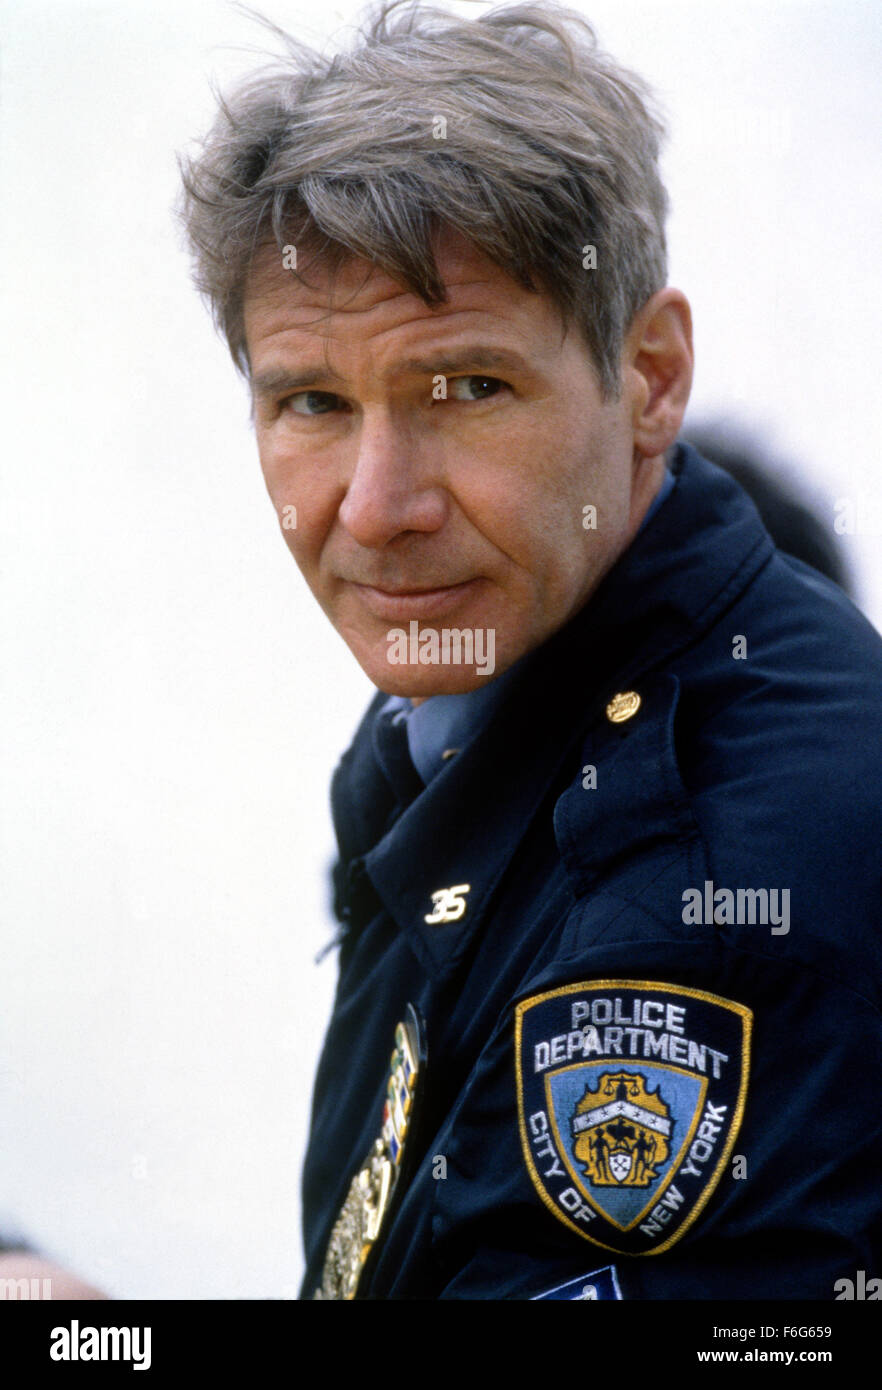 O Meara Ford >> Harrison Ford Devils Own 1997 Stock Photos & Harrison Ford Devils Own 1997 Stock Images - Alamy